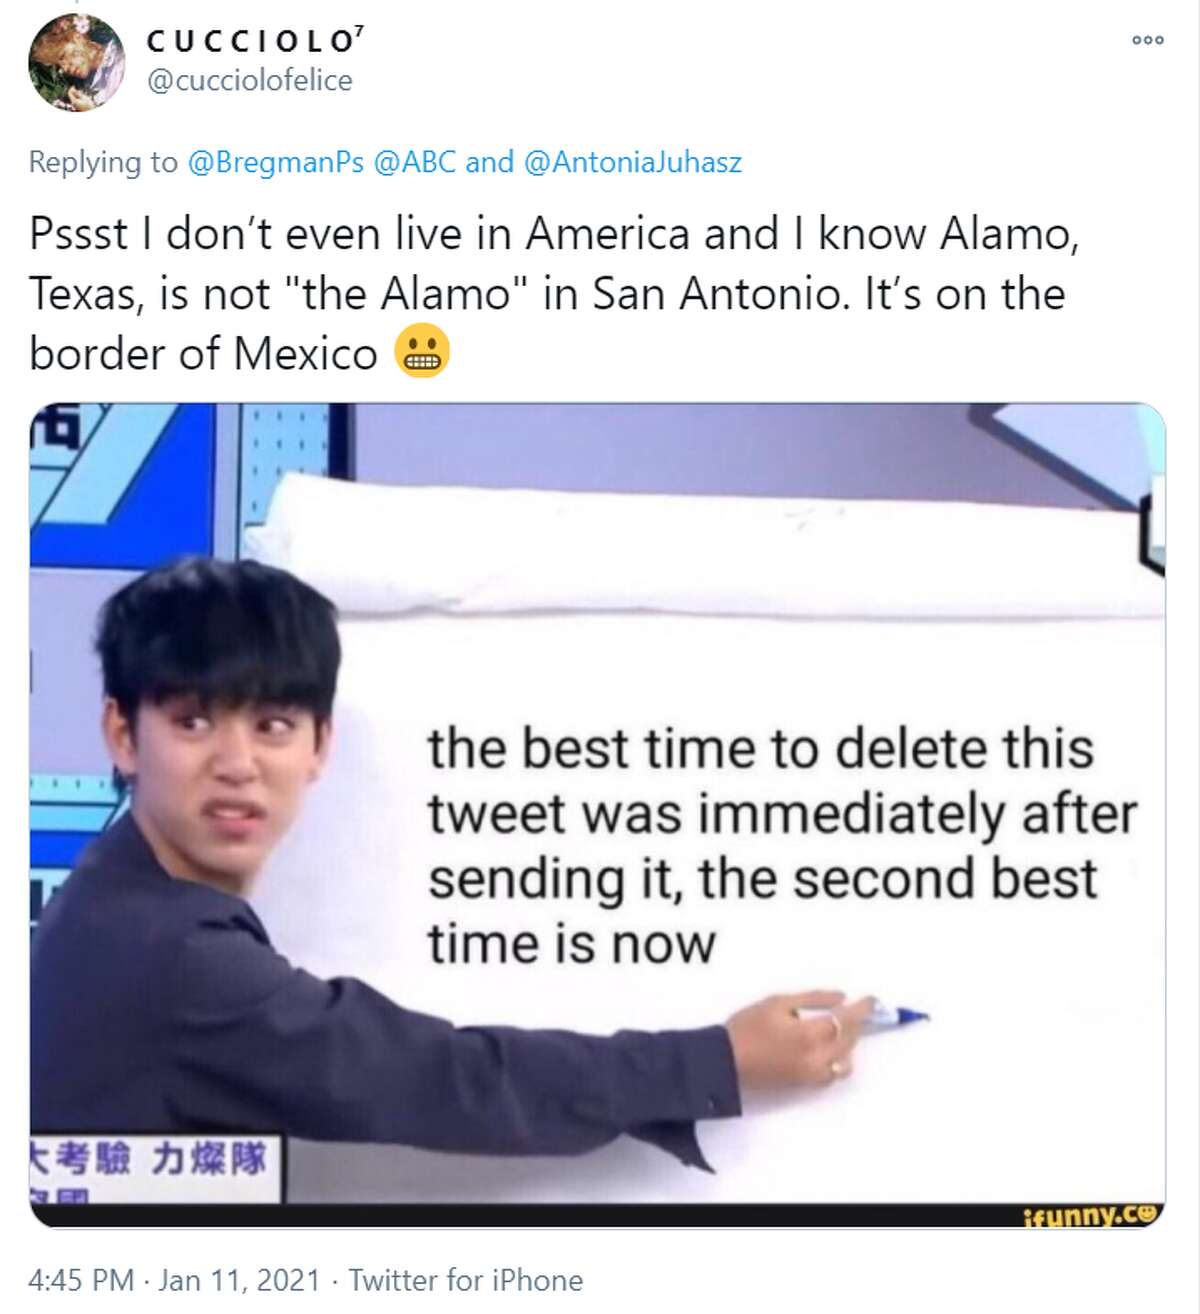 @cucciolofelice: Pssst I don't even live in America and I know Alamo, Texas, is not